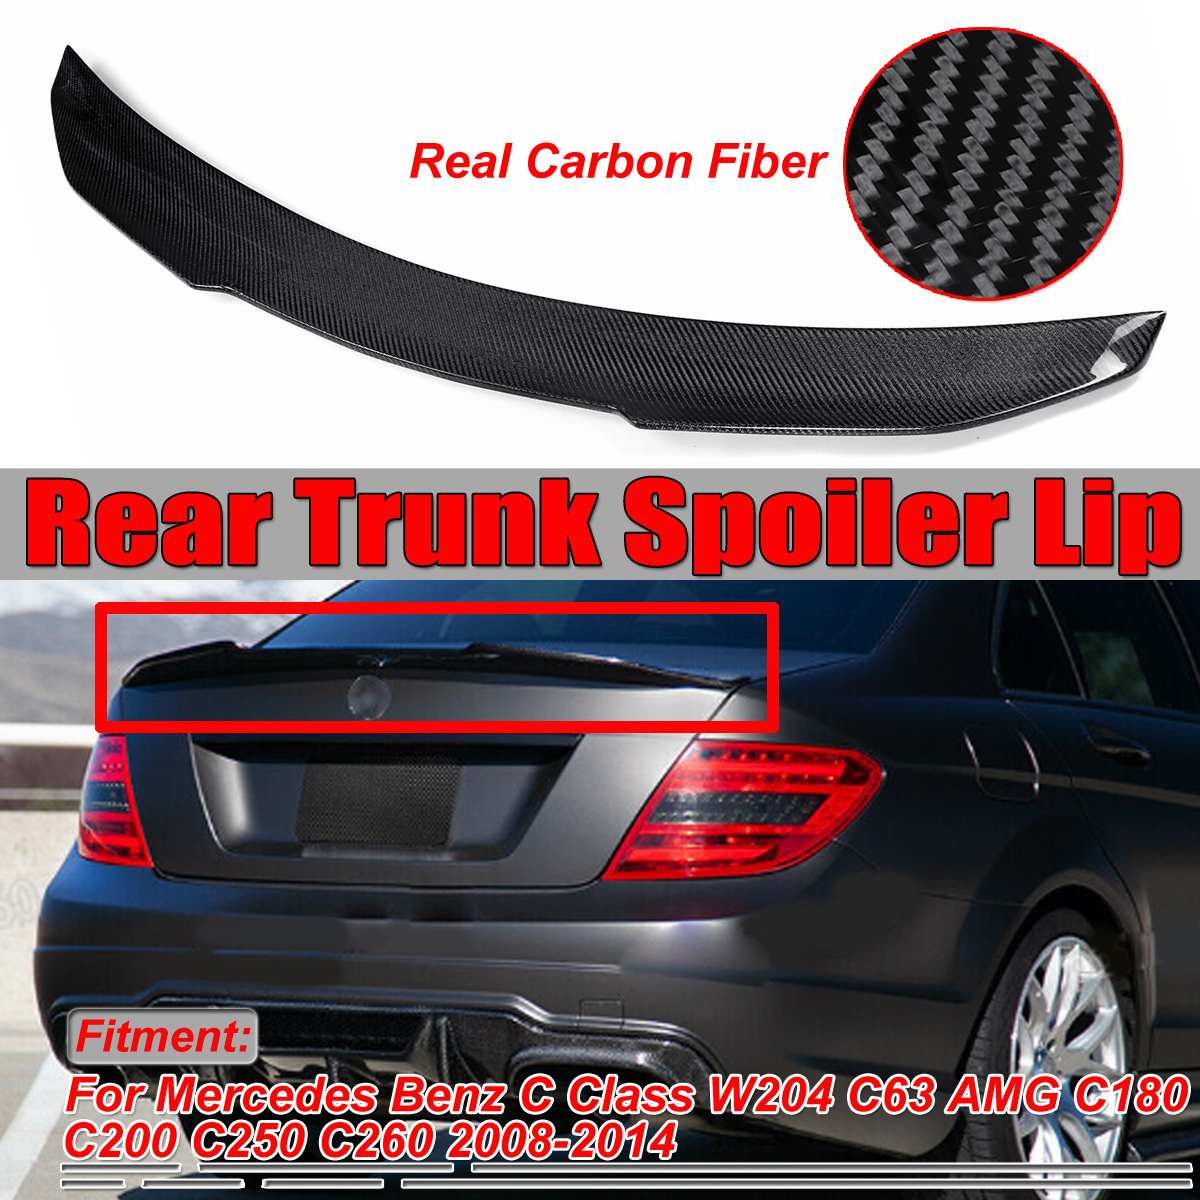 PSM <font><b>W204</b></font> Real Carbon Fiber Car Rear Trunk Boot Lip <font><b>Spoiler</b></font> Wing Lid For <font><b>Mercedes</b></font> For <font><b>Benz</b></font> <font><b>C</b></font> <font><b>Class</b></font> <font><b>W204</b></font> C63 For AMG 2008-2014 image